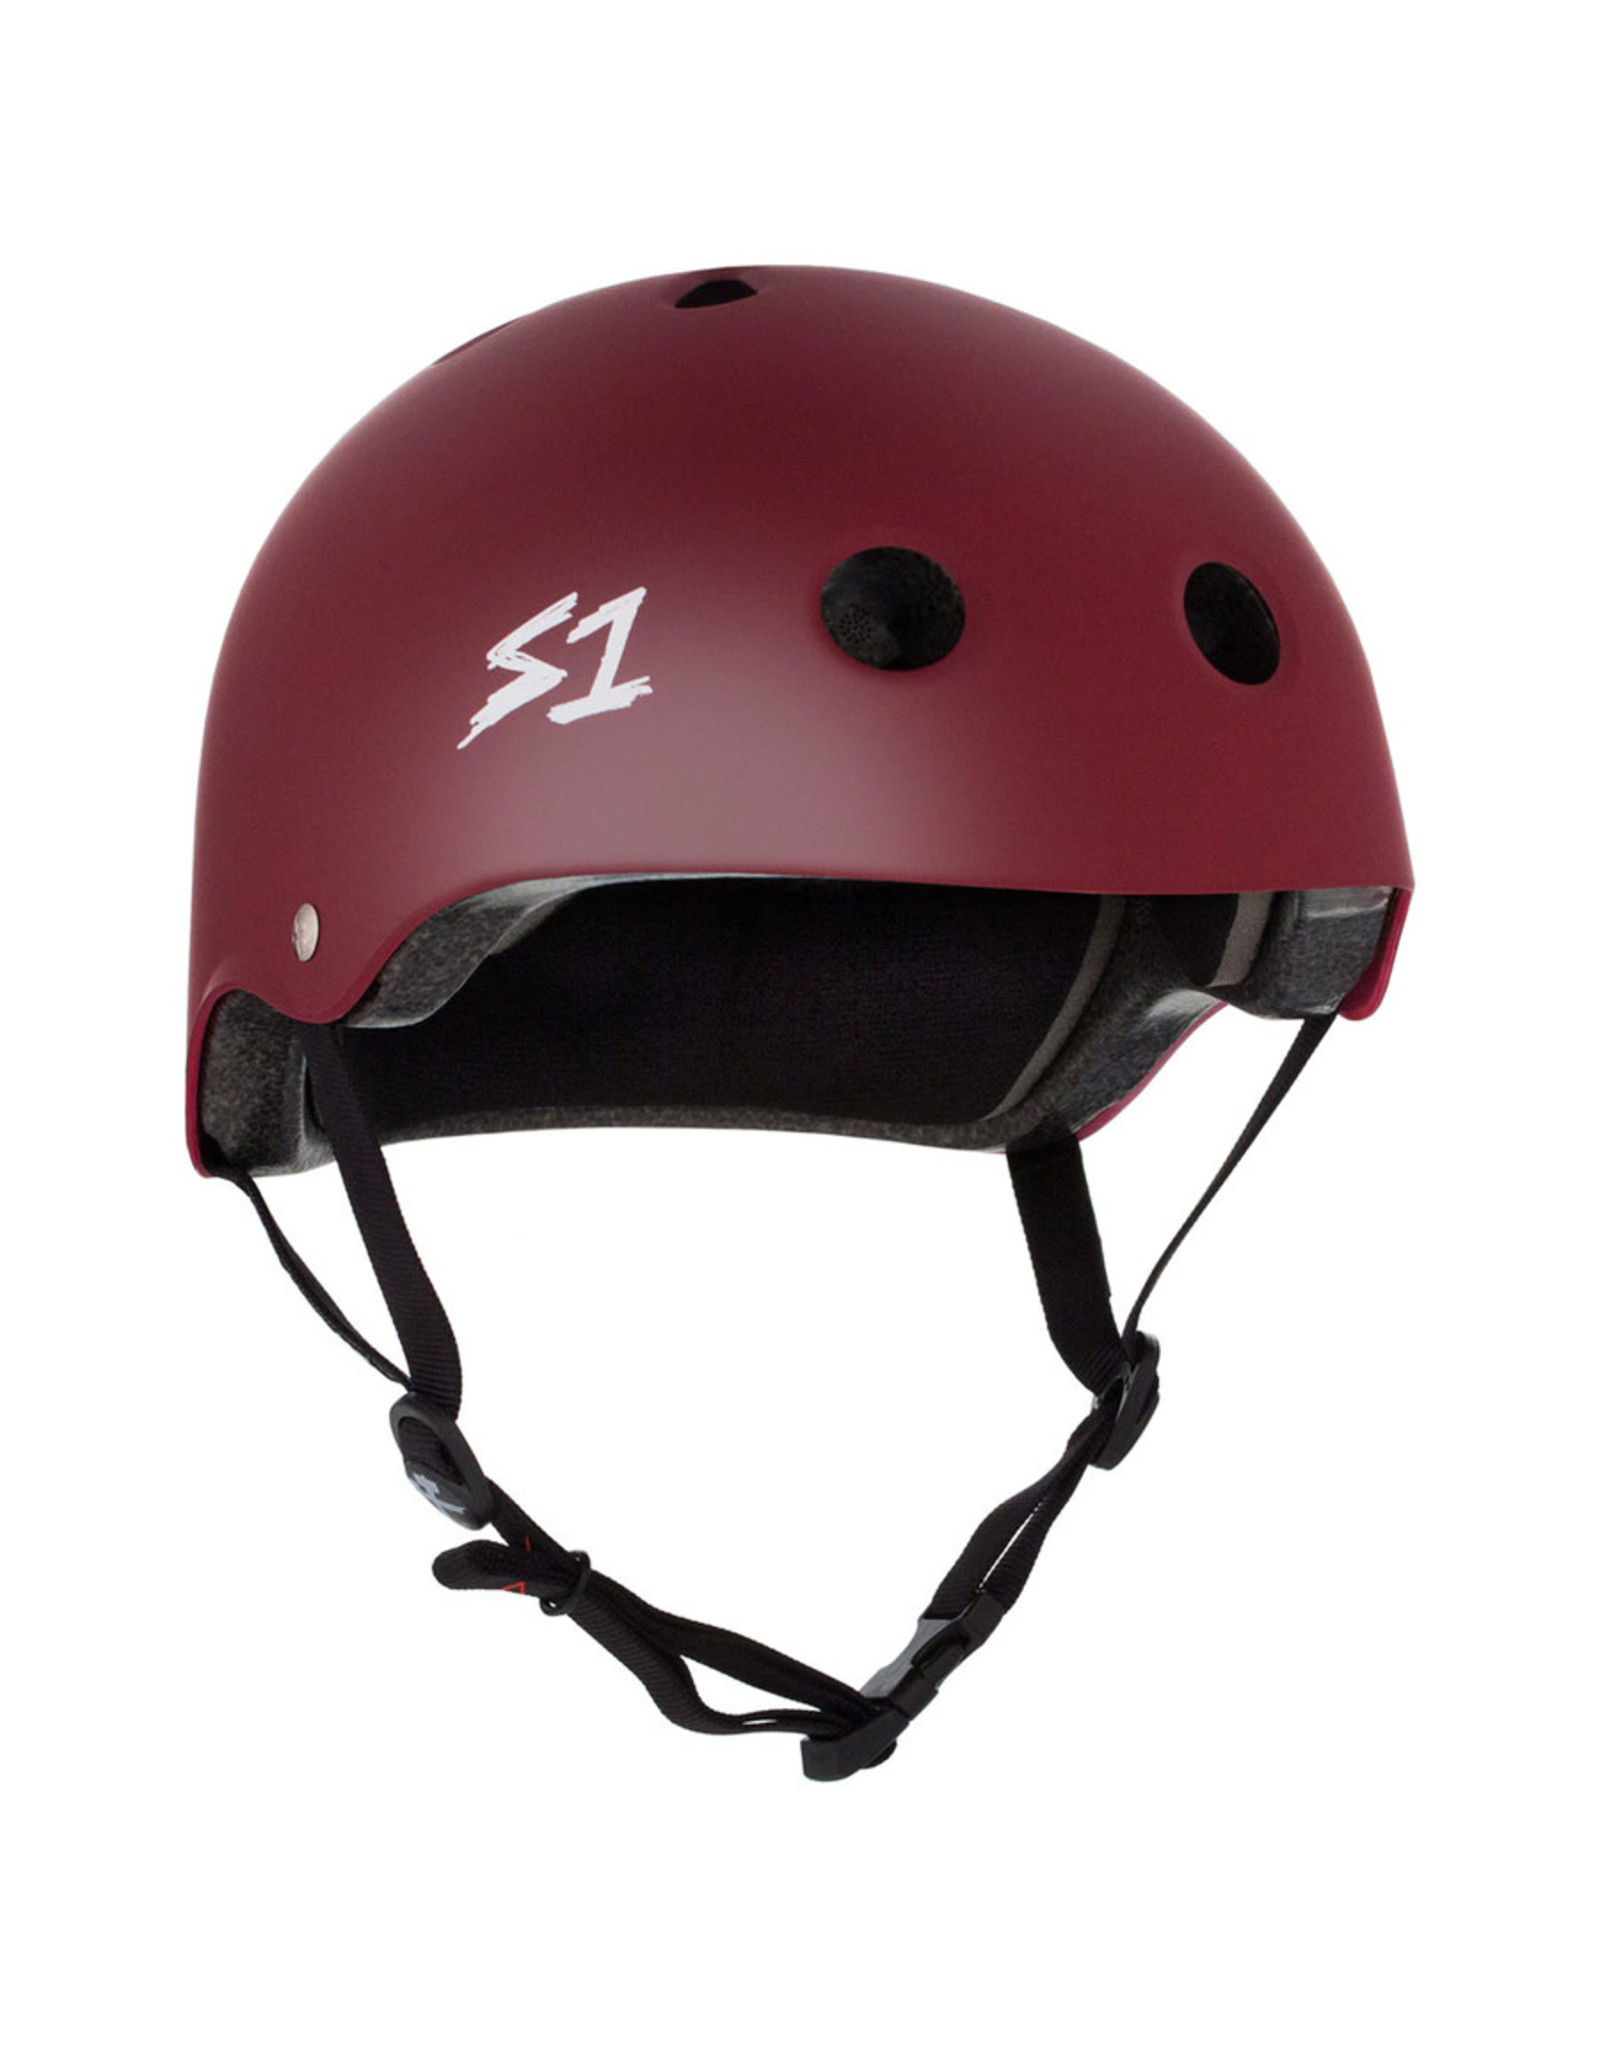 S-One S-One Helmet The Adult Lifer (Maroon Matte/Black Straps)